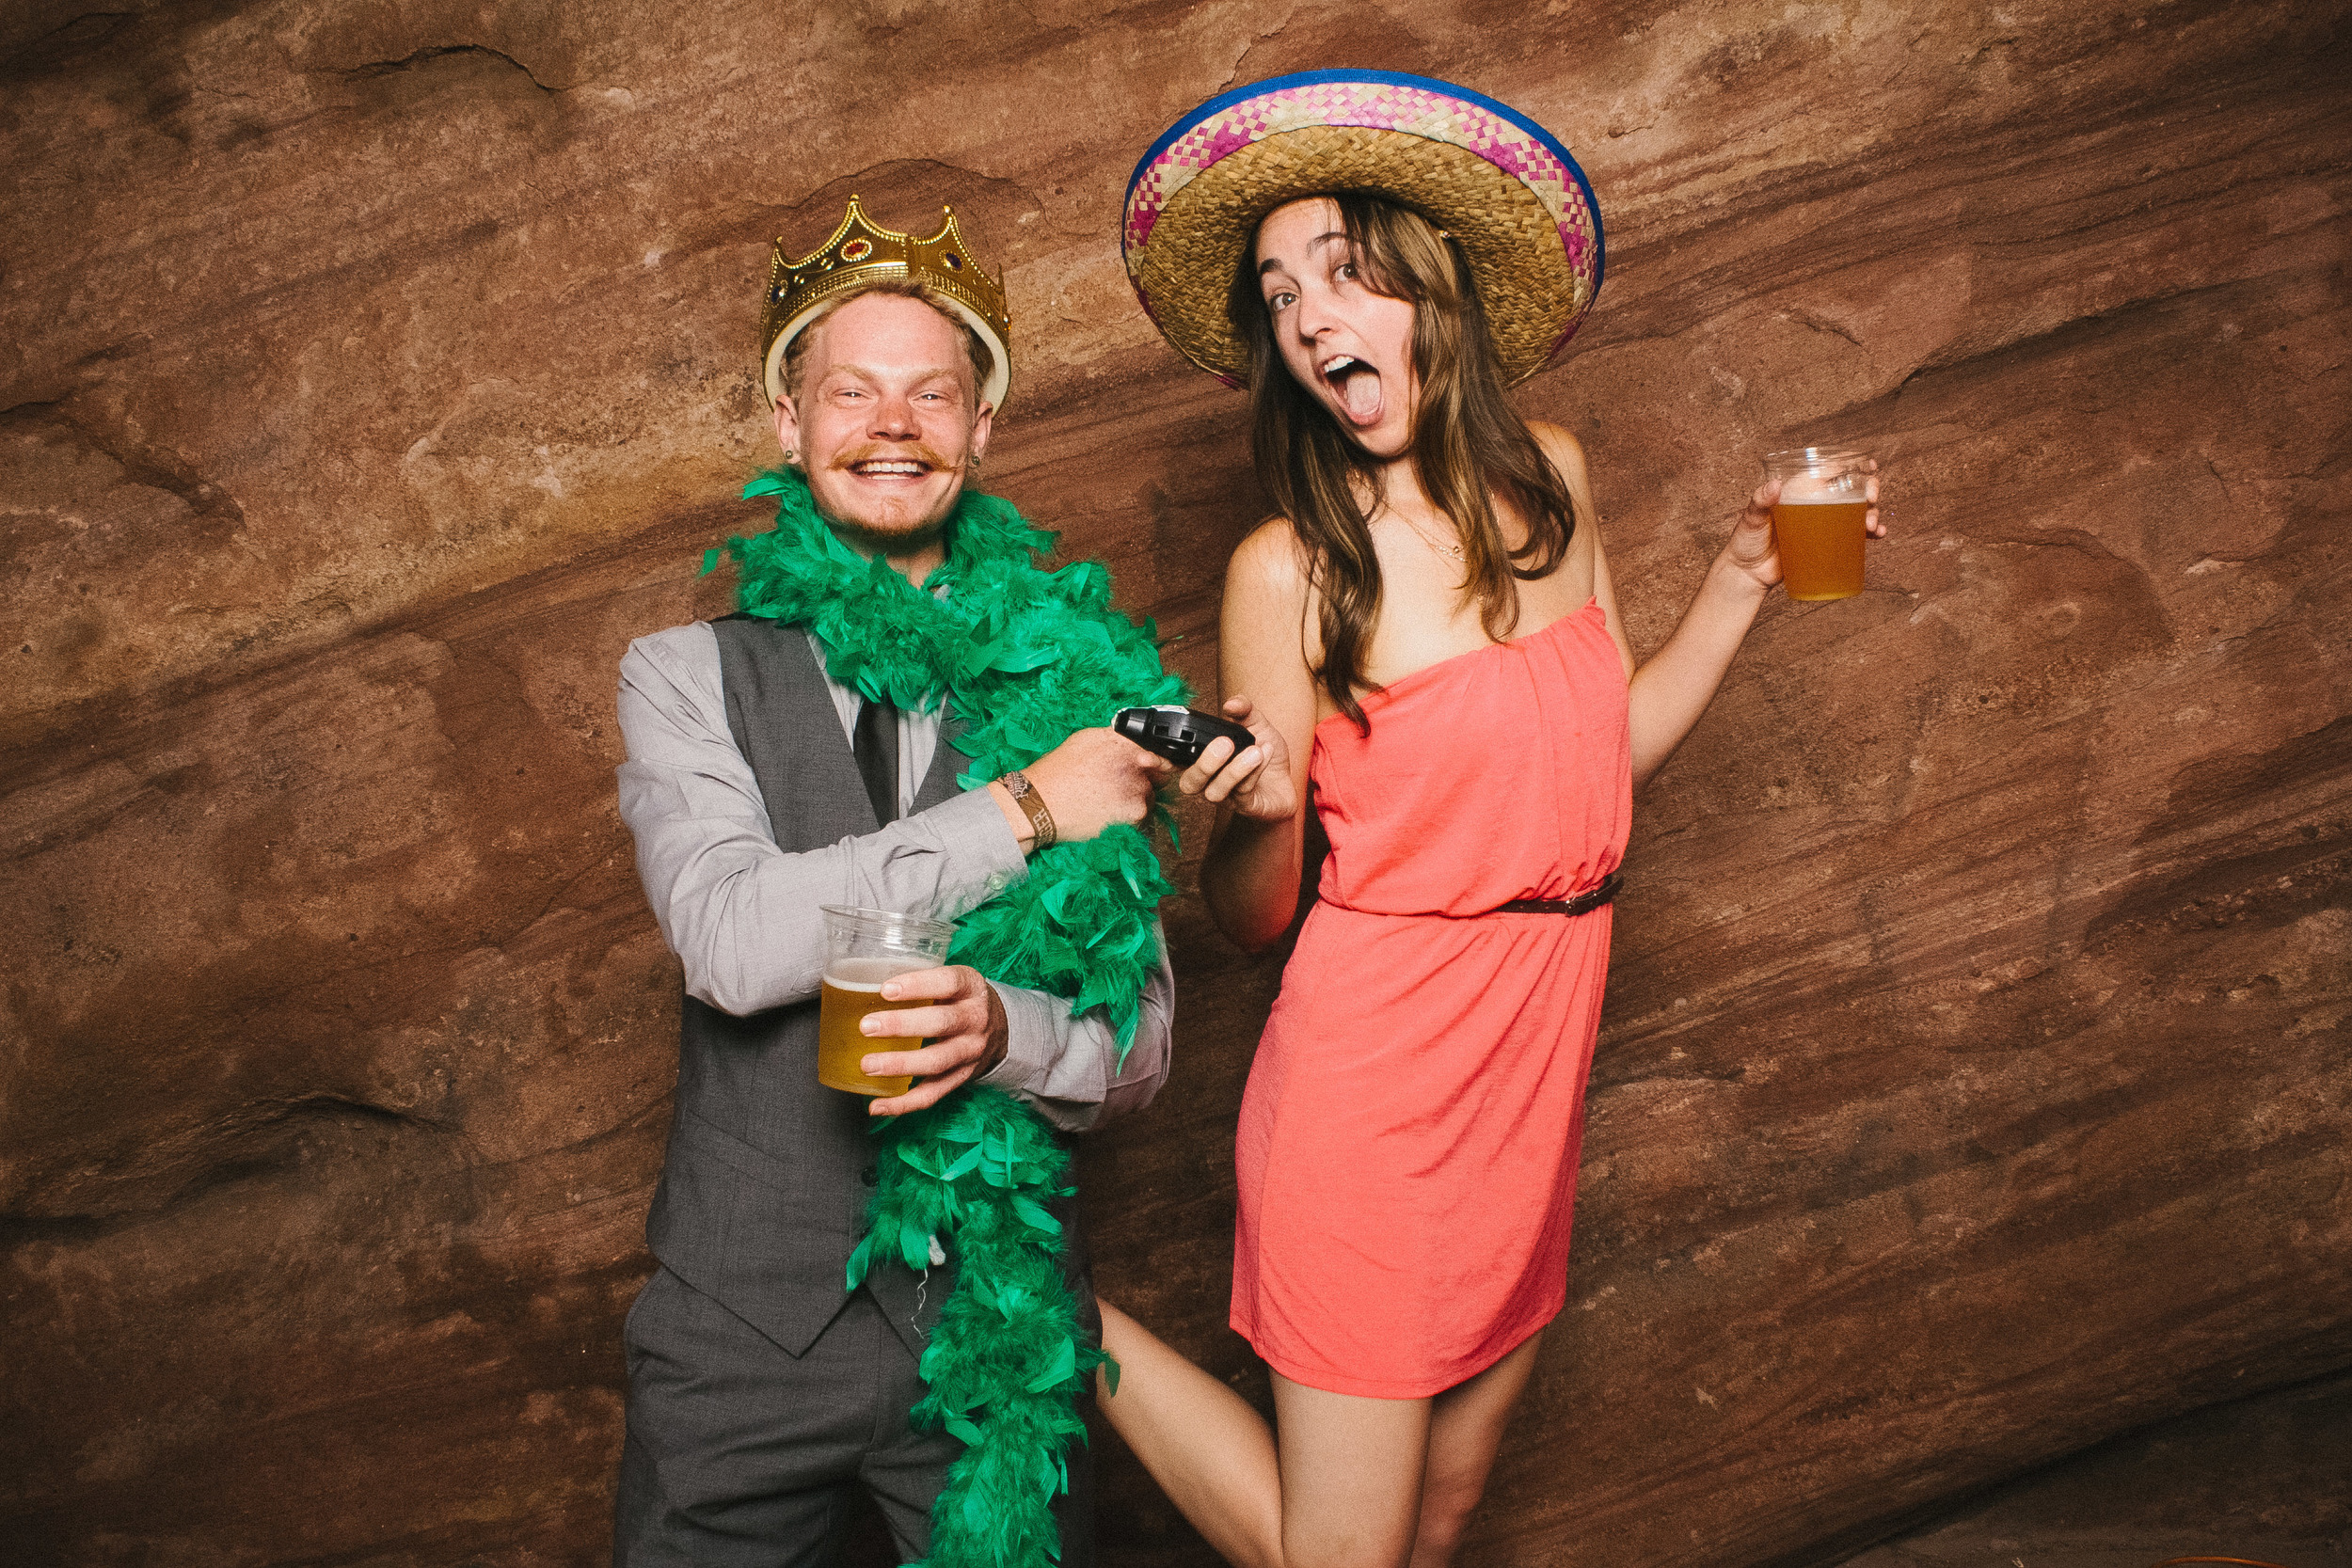 Two friends having fun in the Vert Booth, an open air photobooth in Denver, Colorado